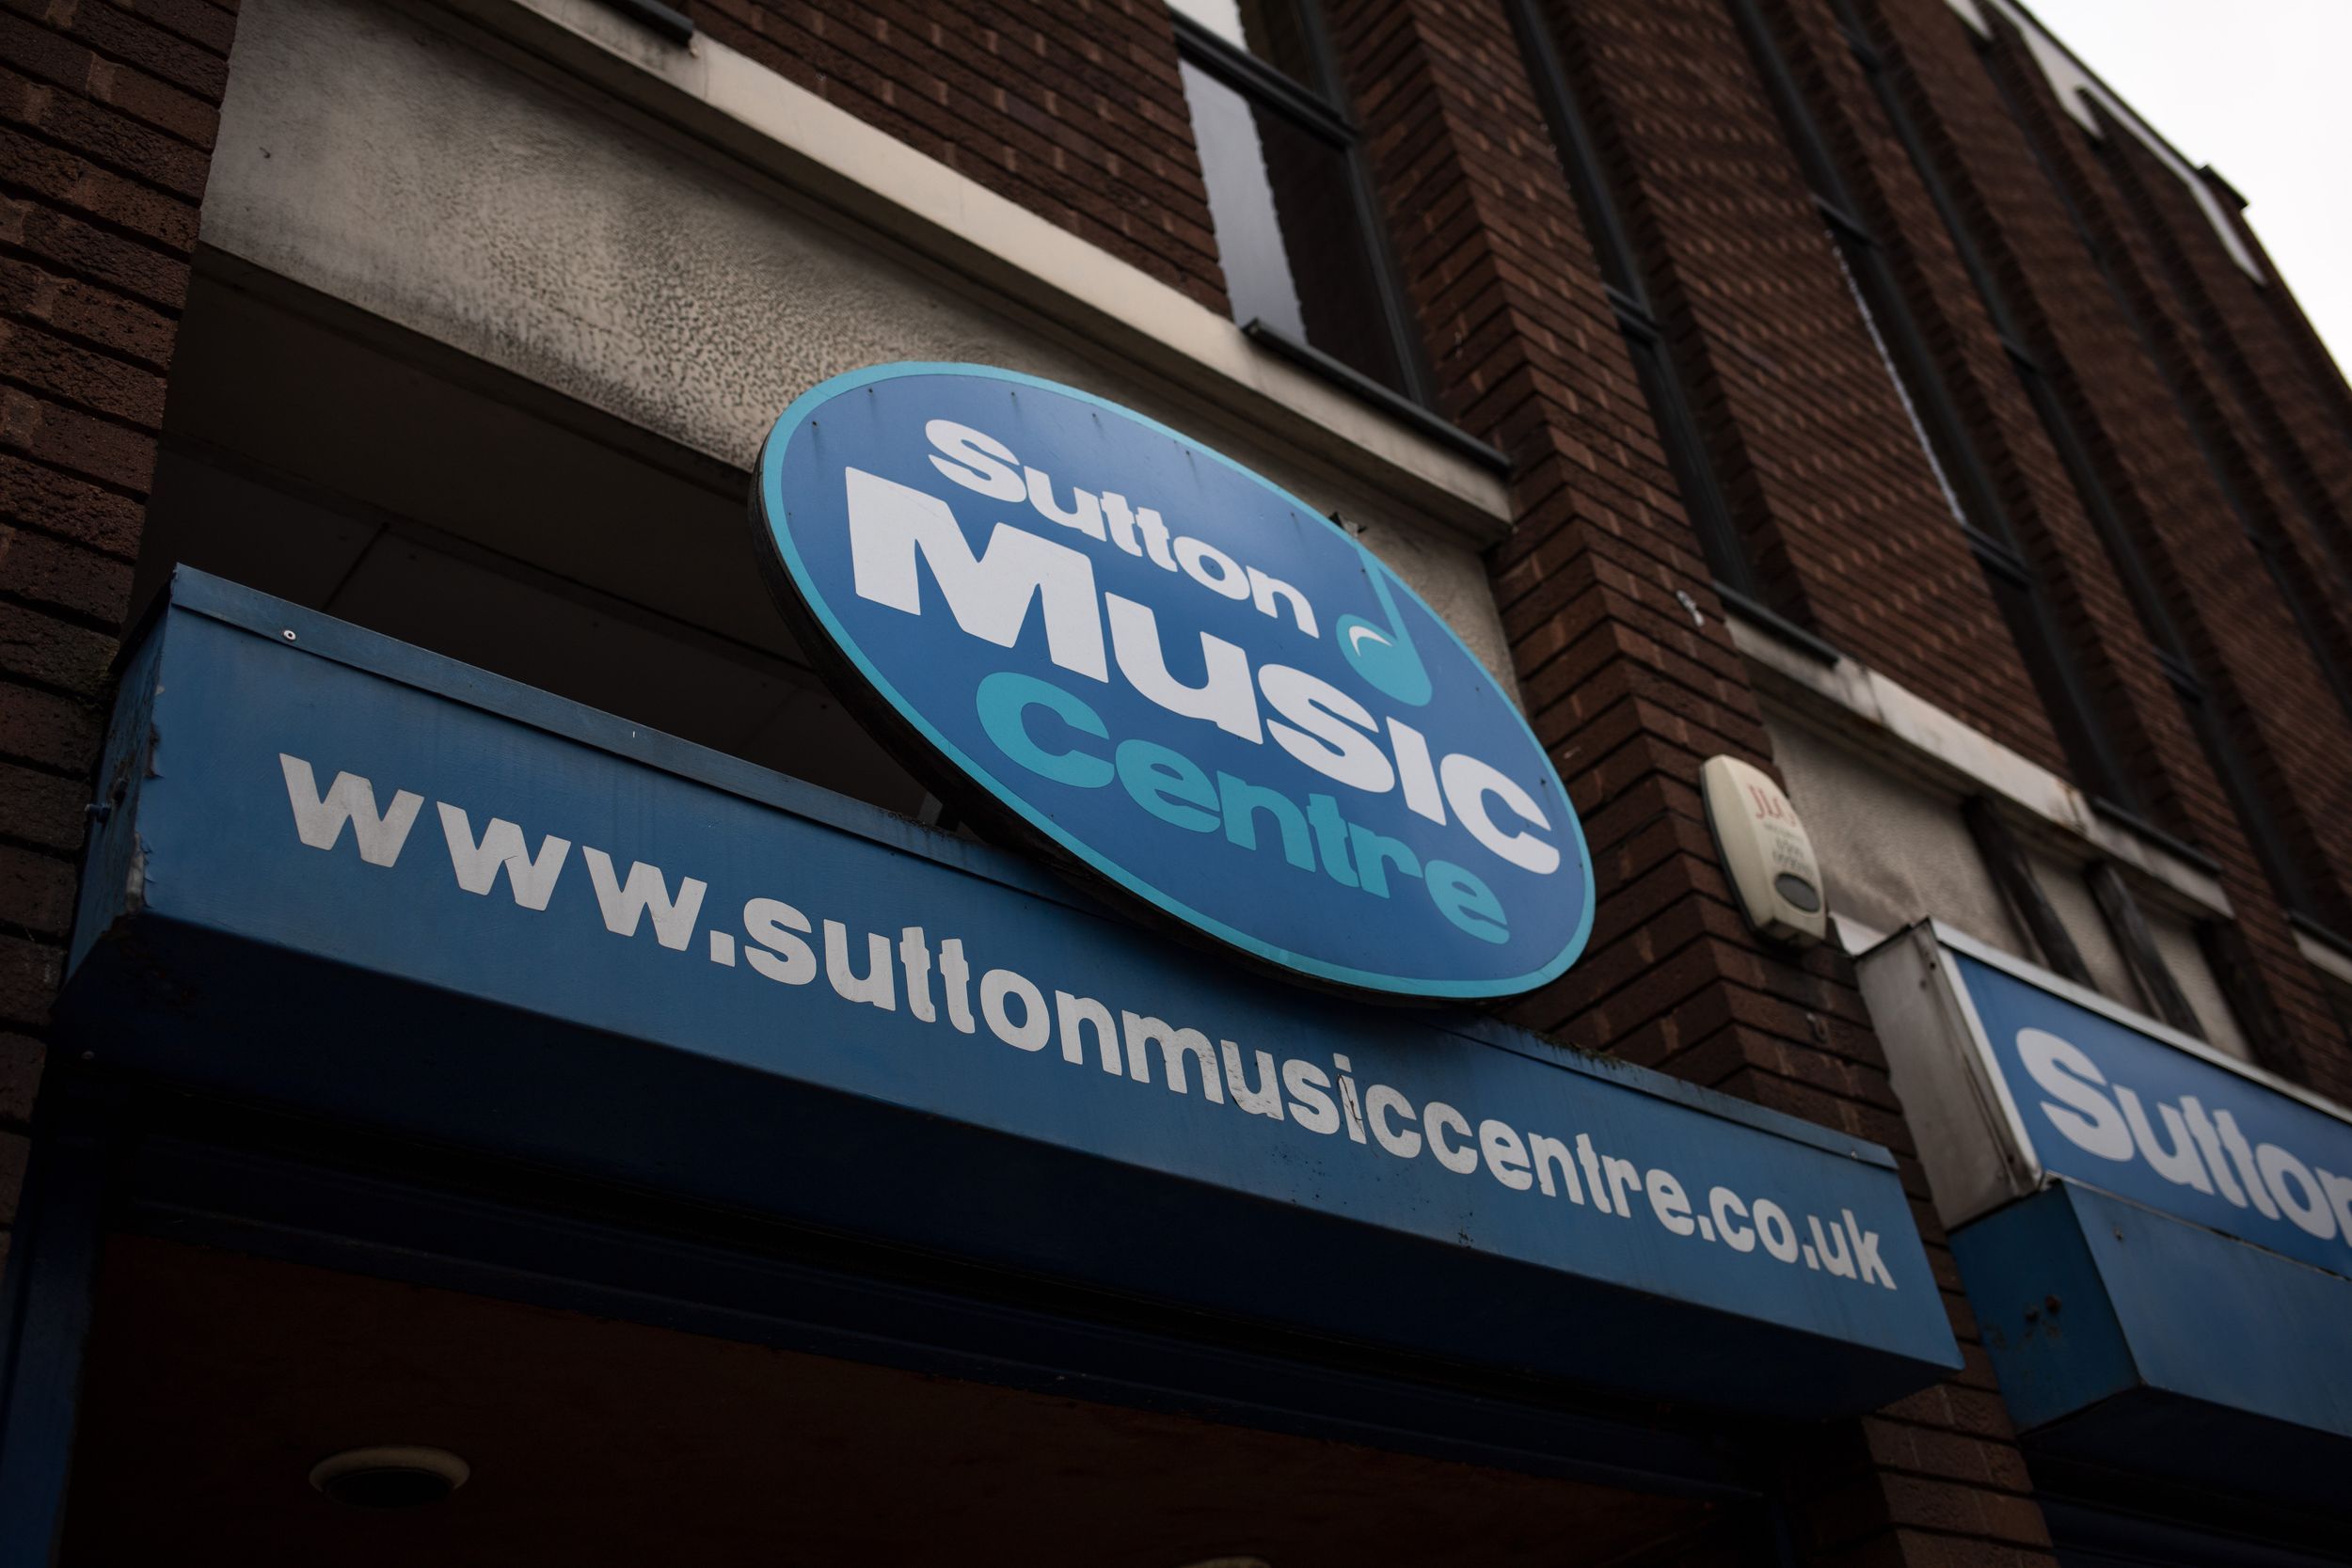 sutton music centre sign